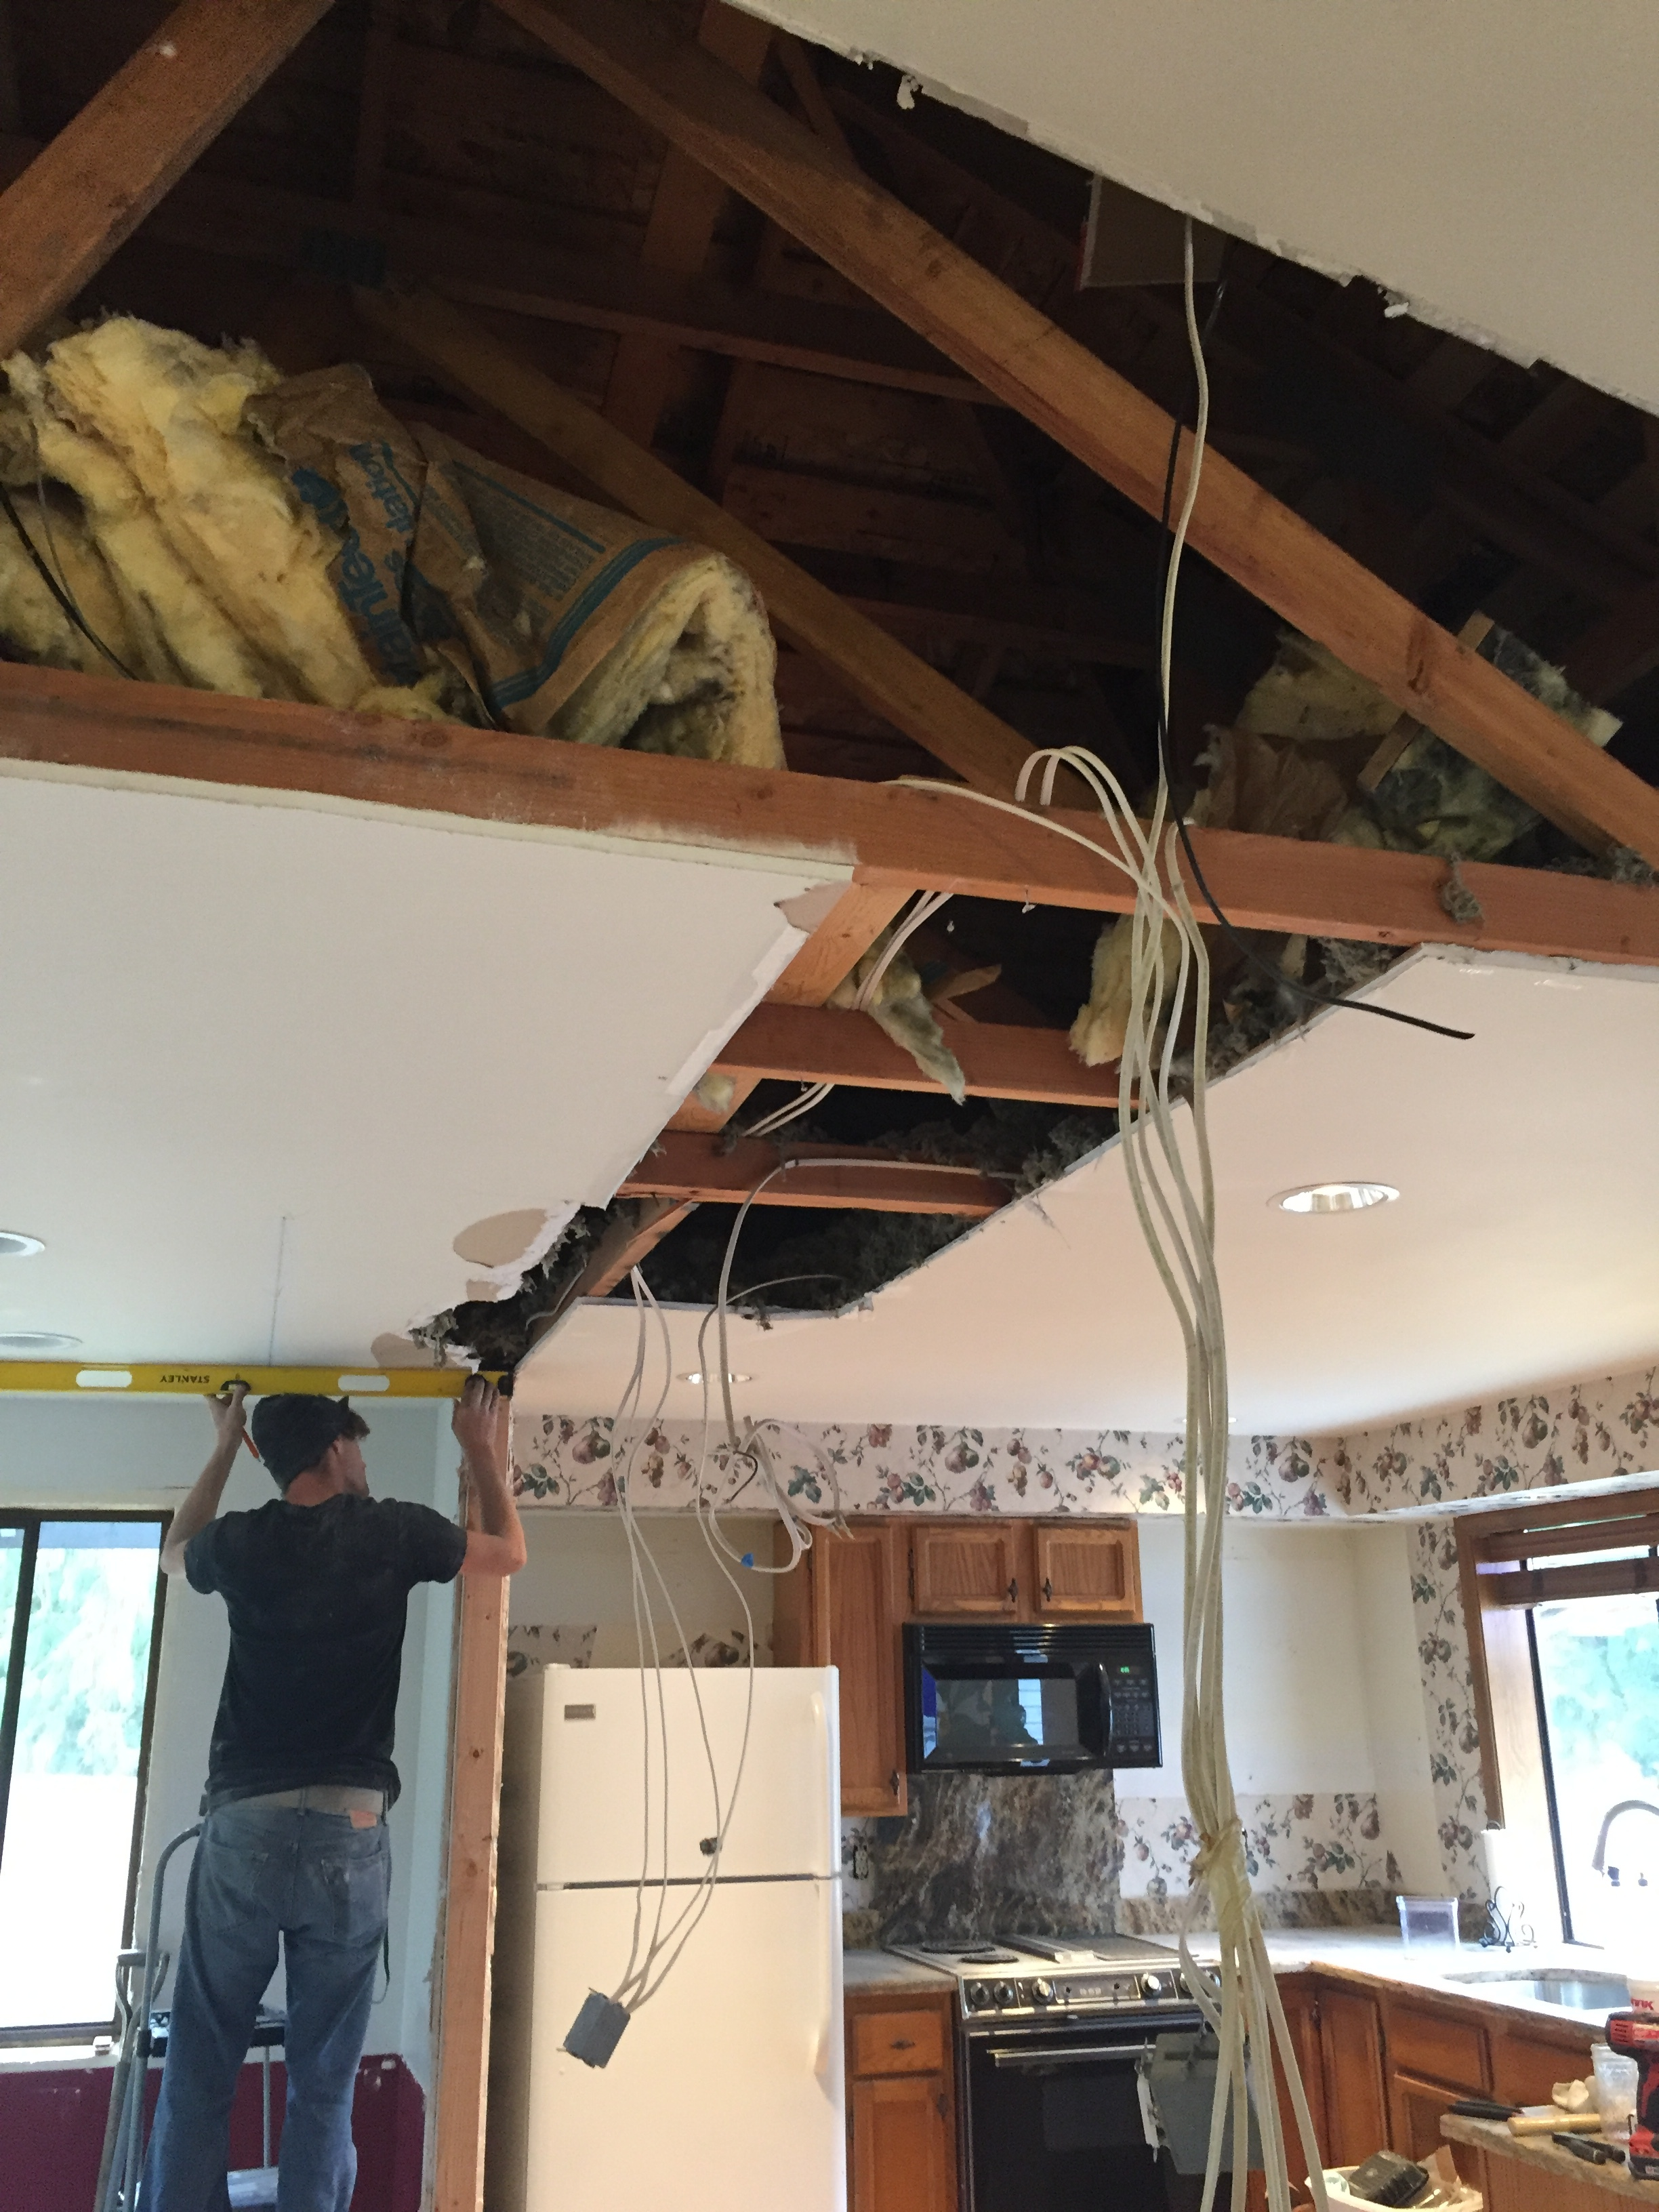 The more my contractors looked at the truss system when we opened up the ceiling, they were convinced we didn't need a post. The exterior was are the supporting walls for the roof. Not having a post was so aweseome!